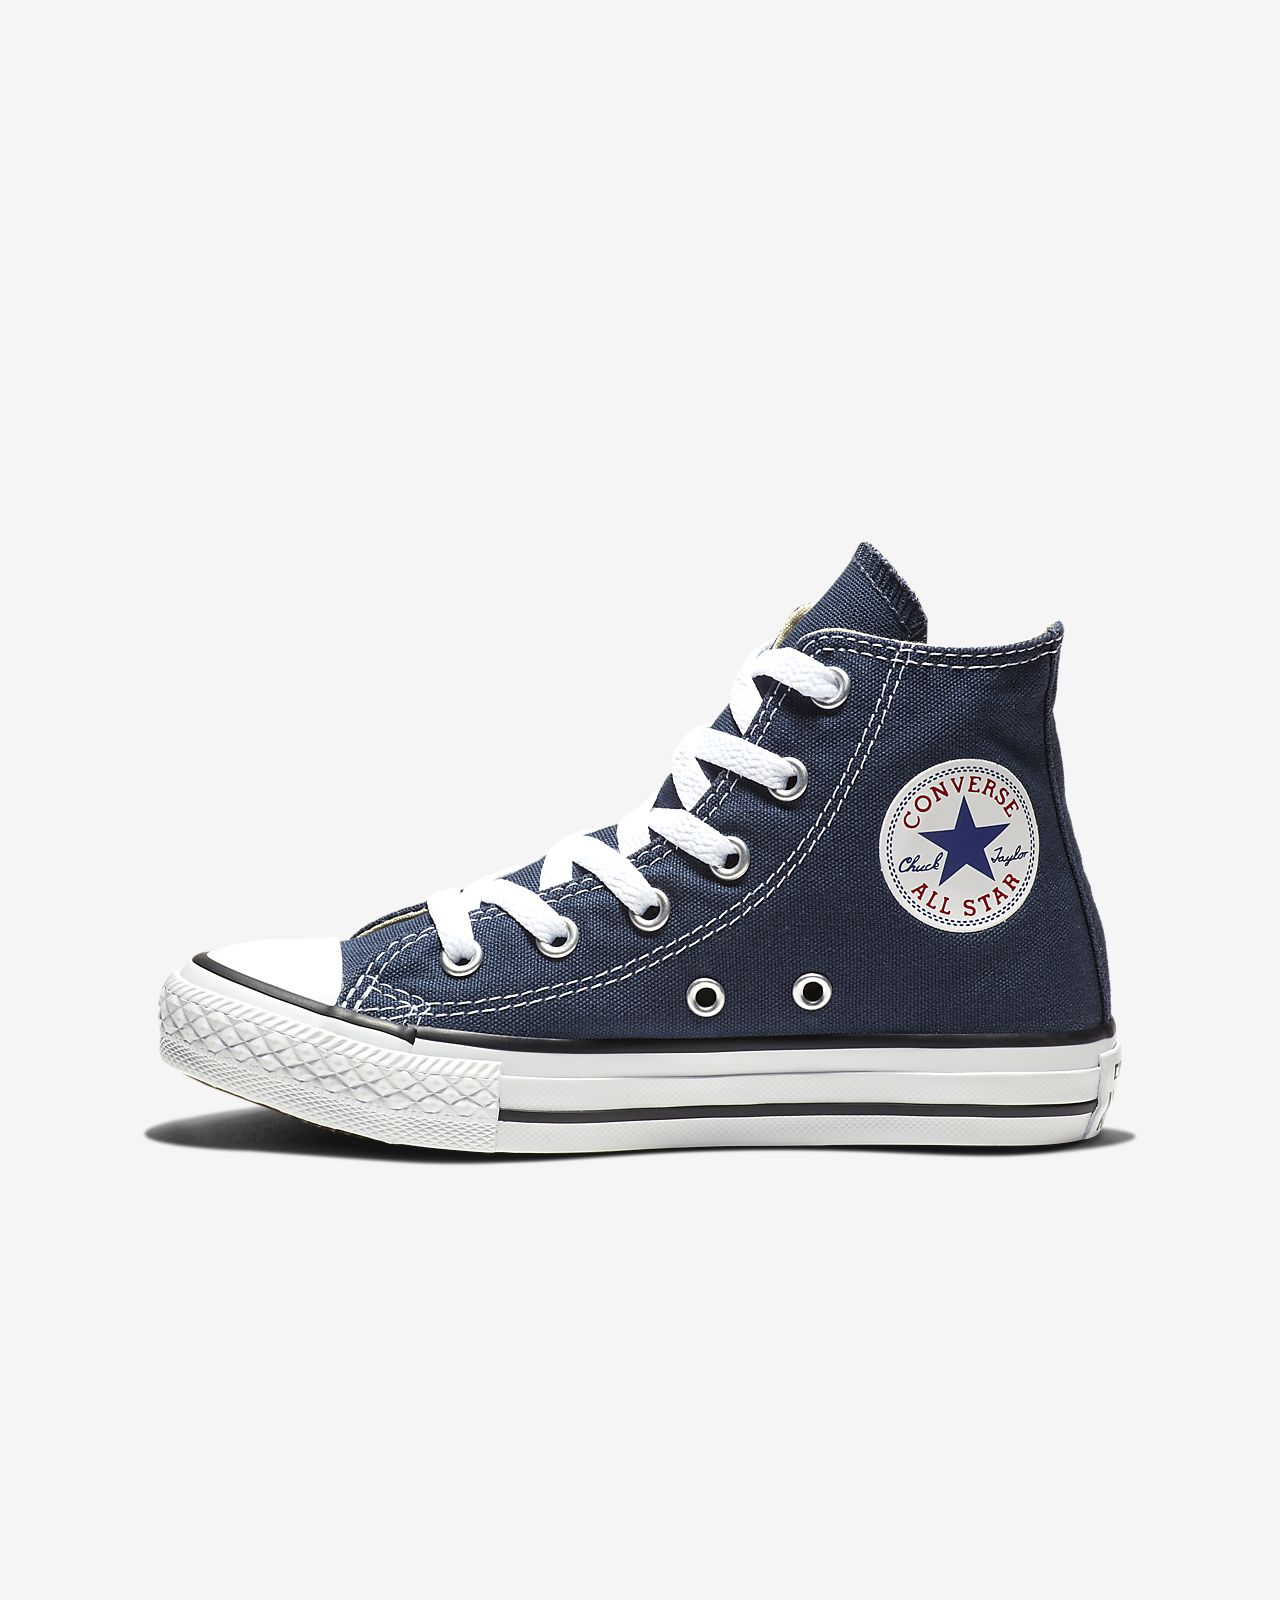 955c238b4c7 Converse Chuck Taylor All Star High Top (10.5c-3y) Little Kids  Shoe ...